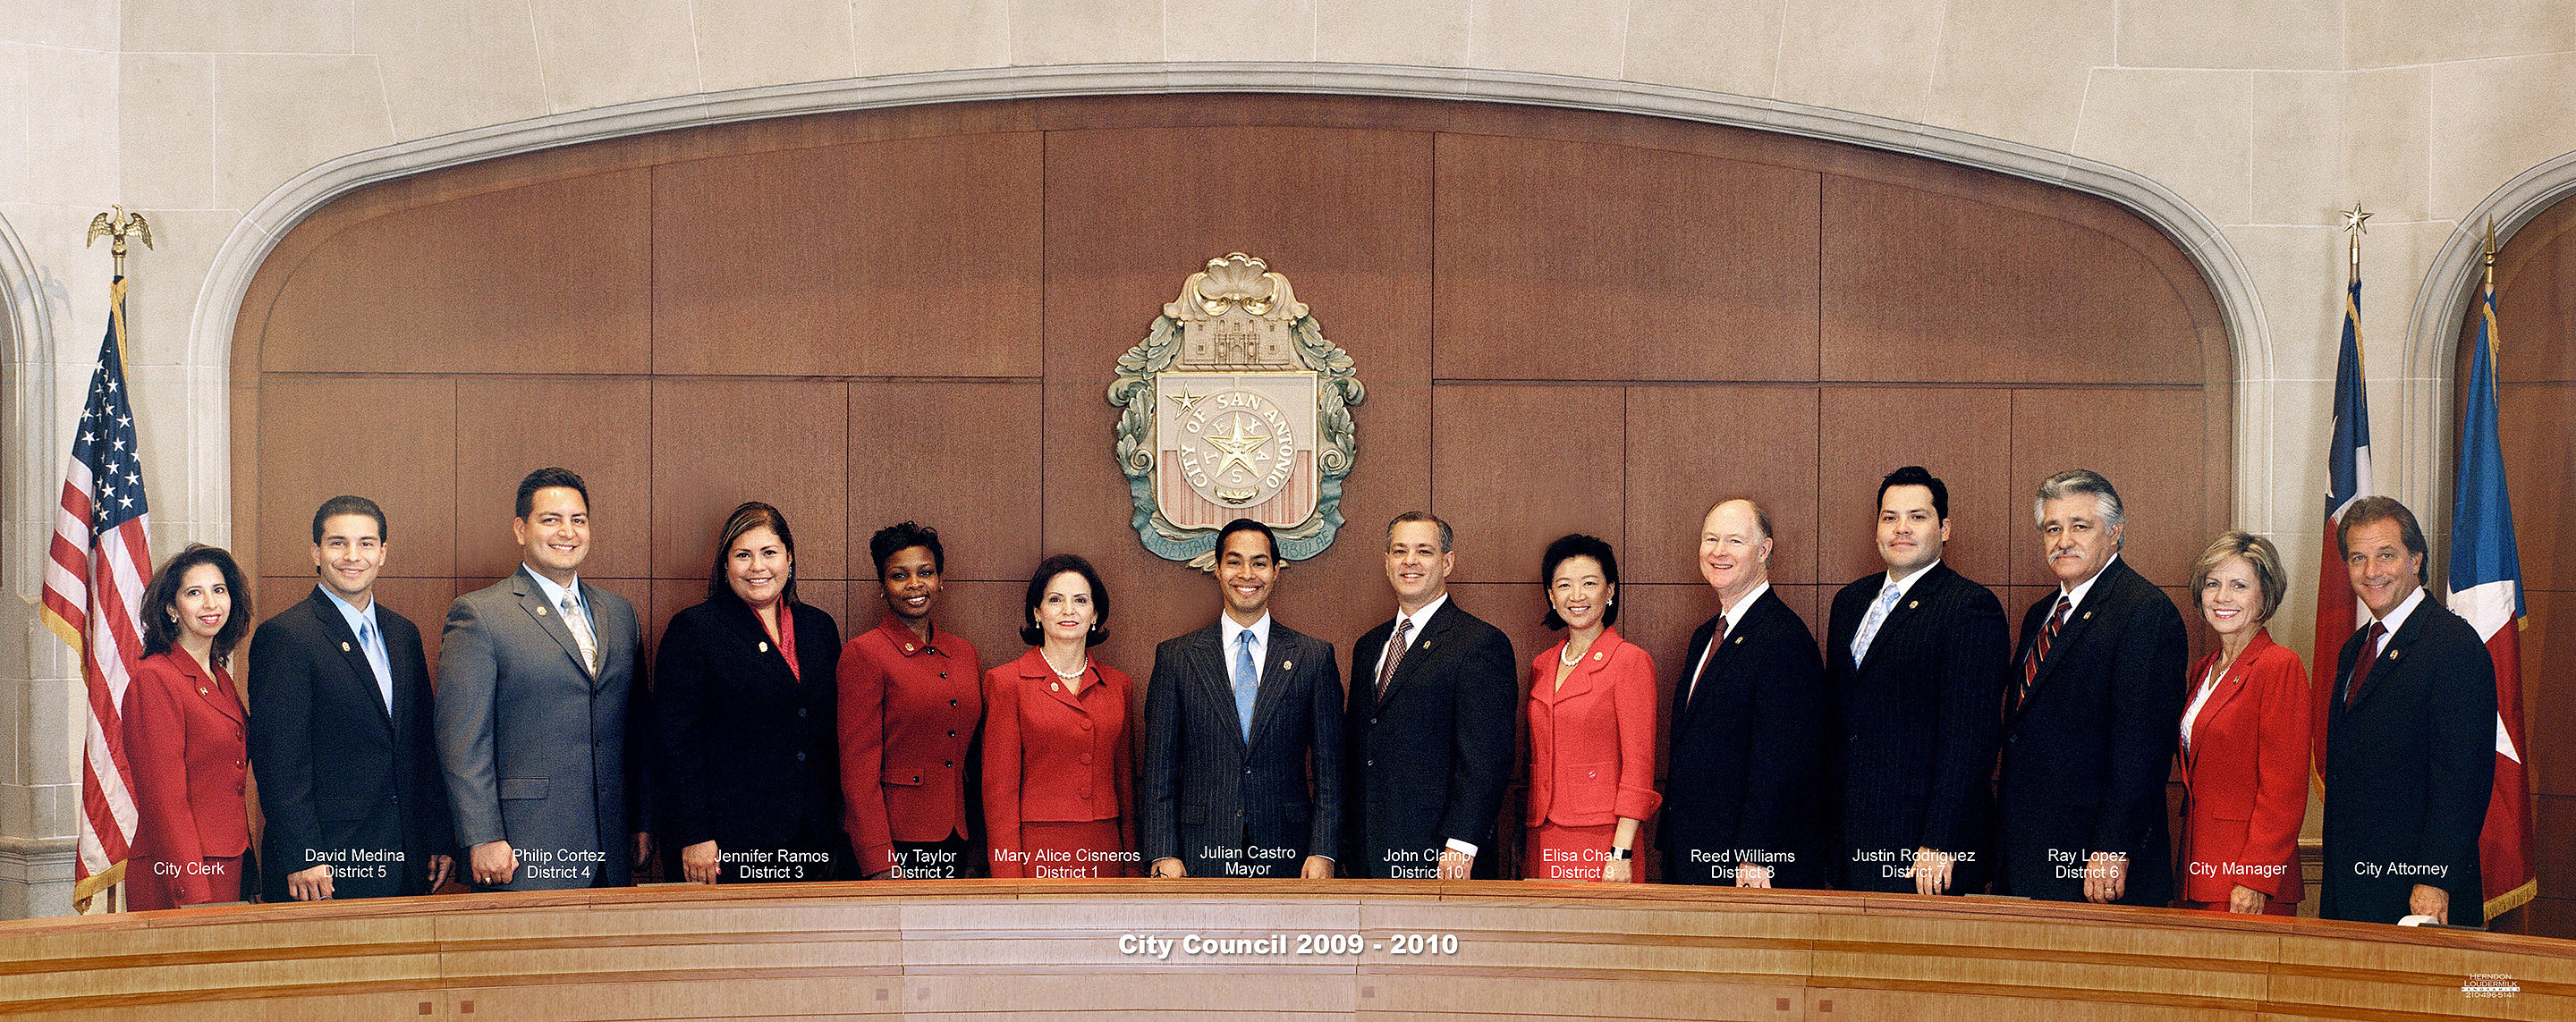 Mayor and City Council Members